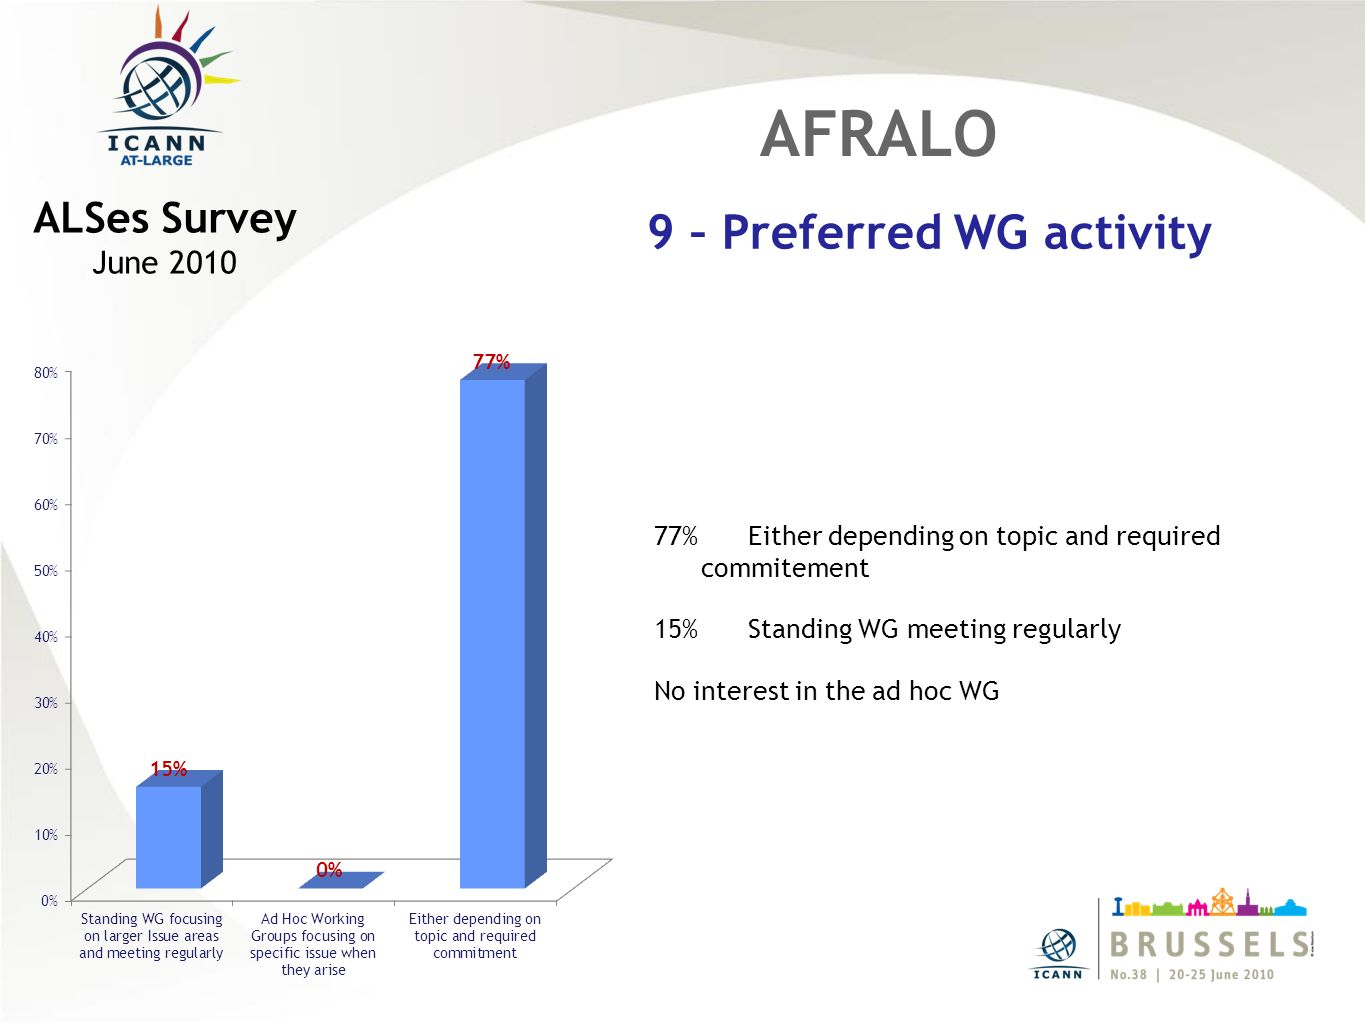 77% Either depending on topic and required commitement 15% Standing WG meeting regularly No interest in the ad hoc WG AFRALO 9 – Preferred WG activity ALSes Survey June 2010